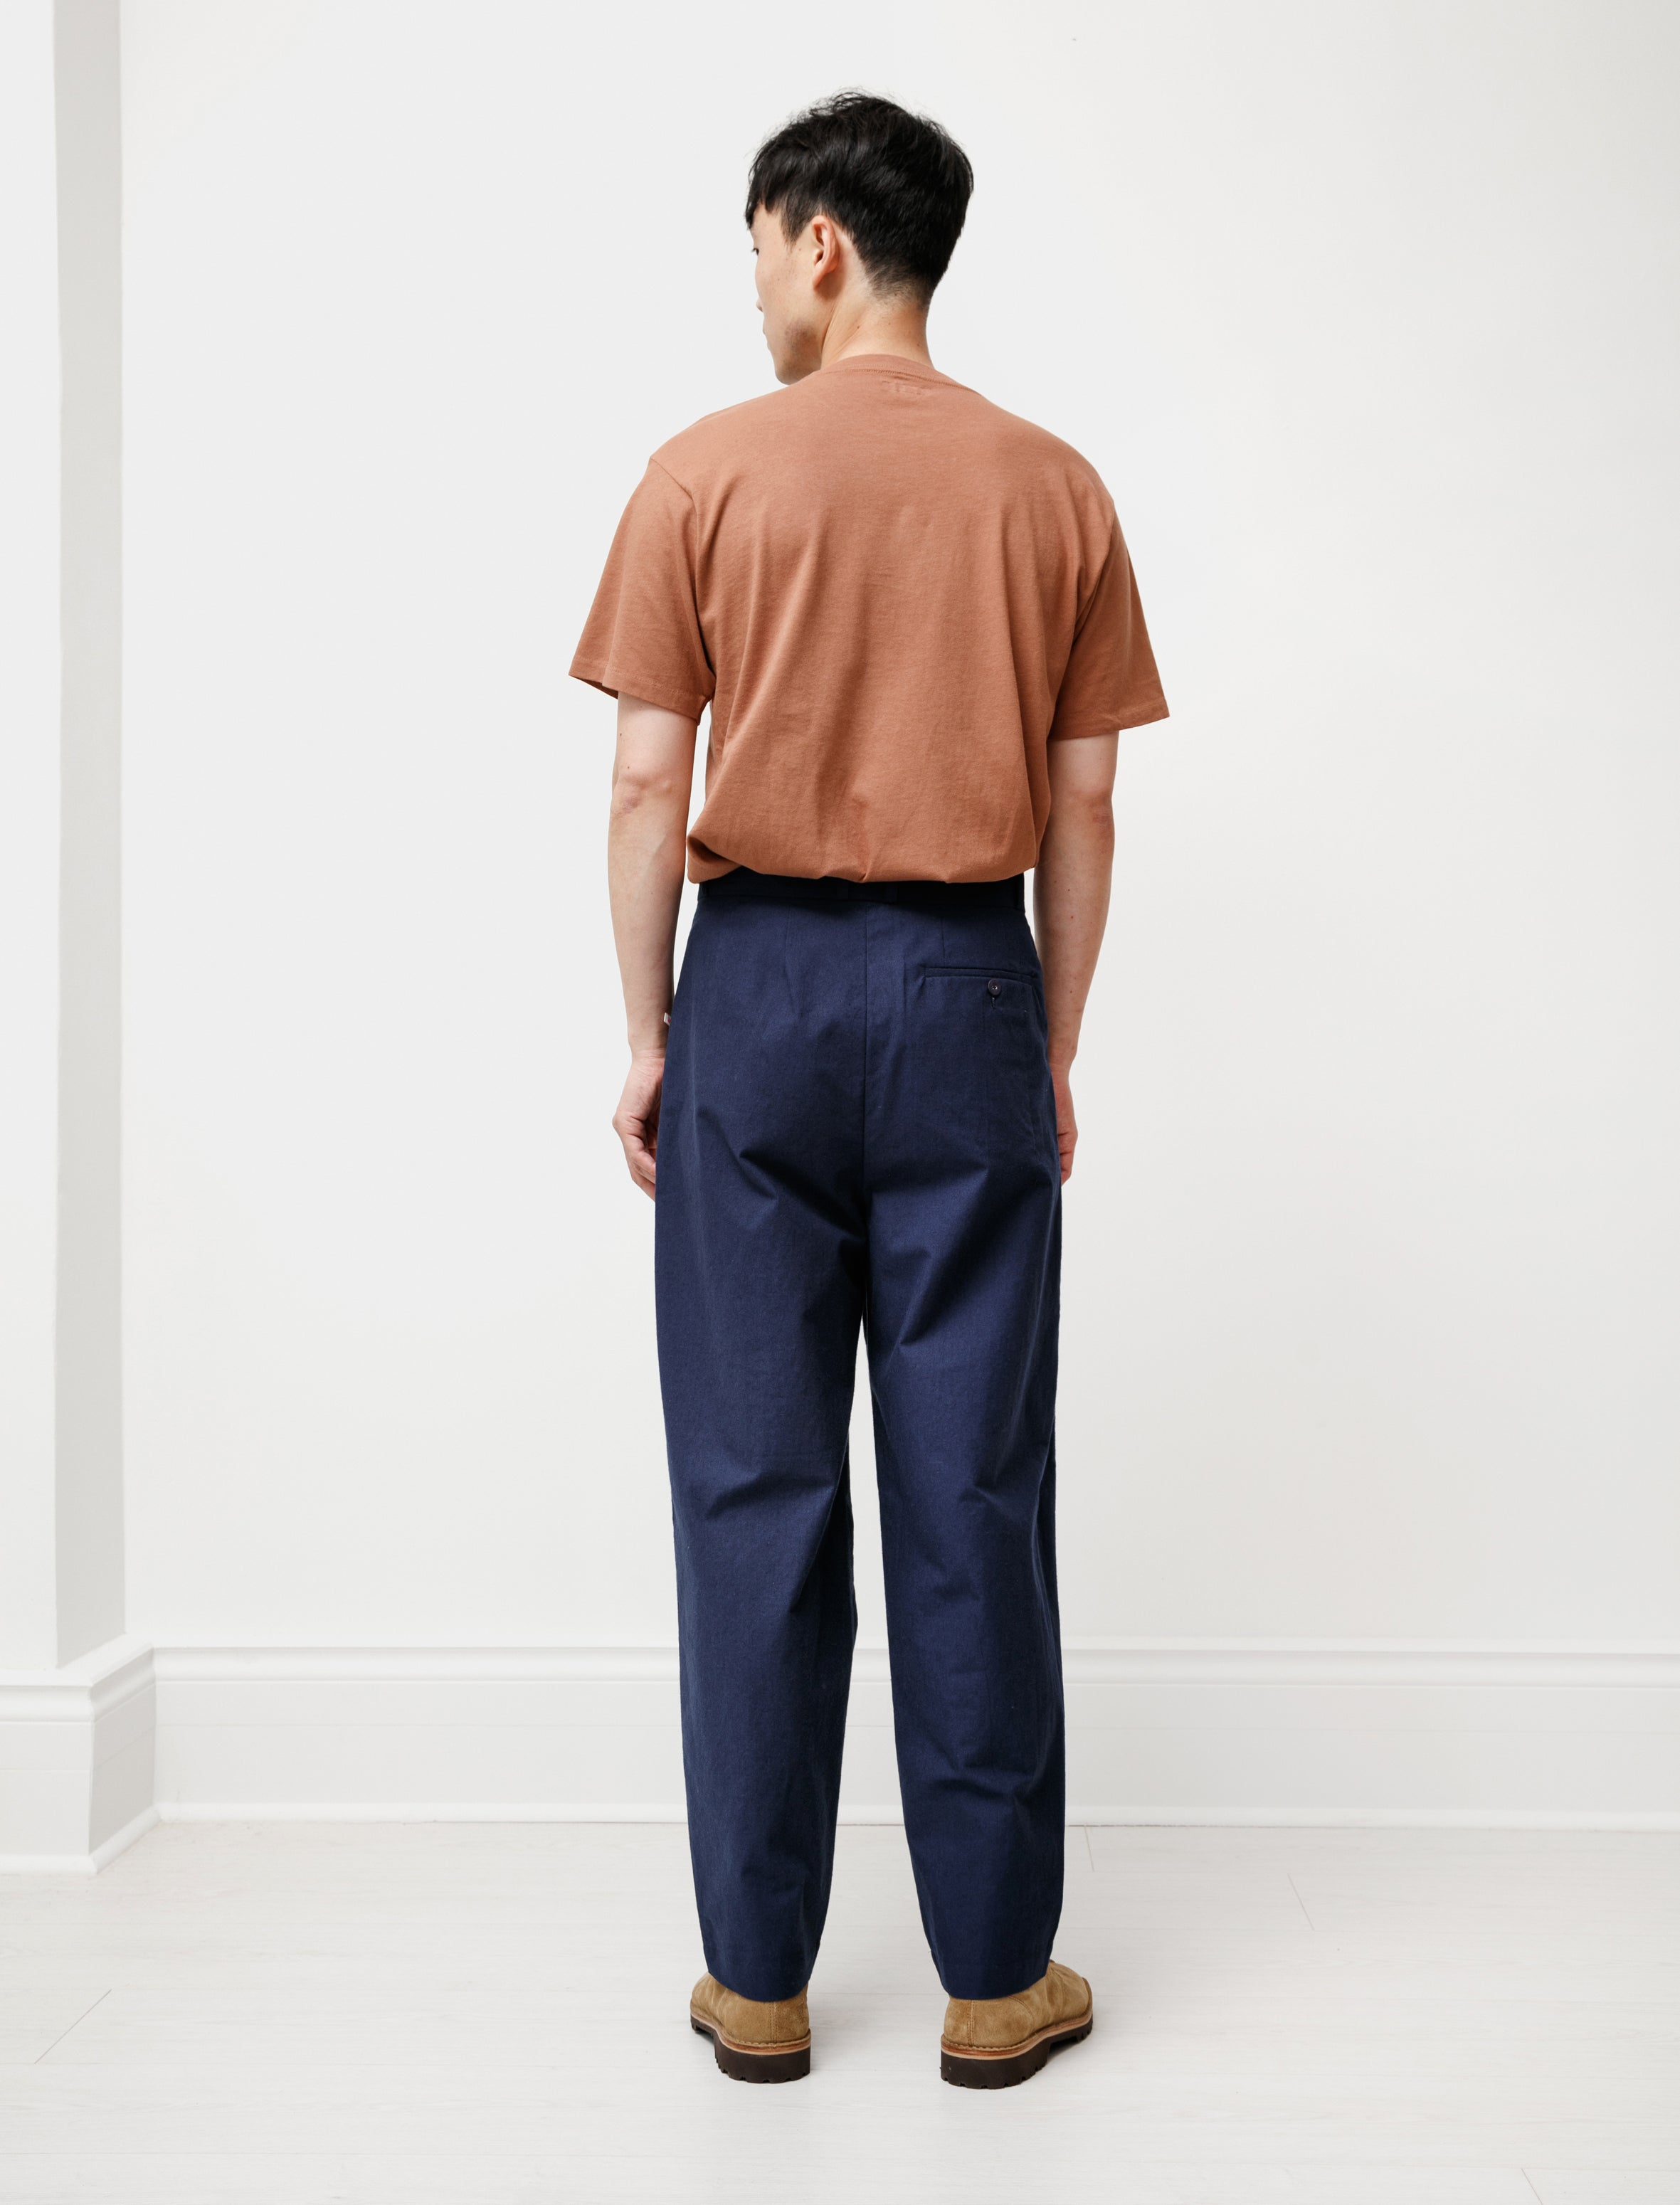 Frank Leder Baltic Blue Dyed Trouser